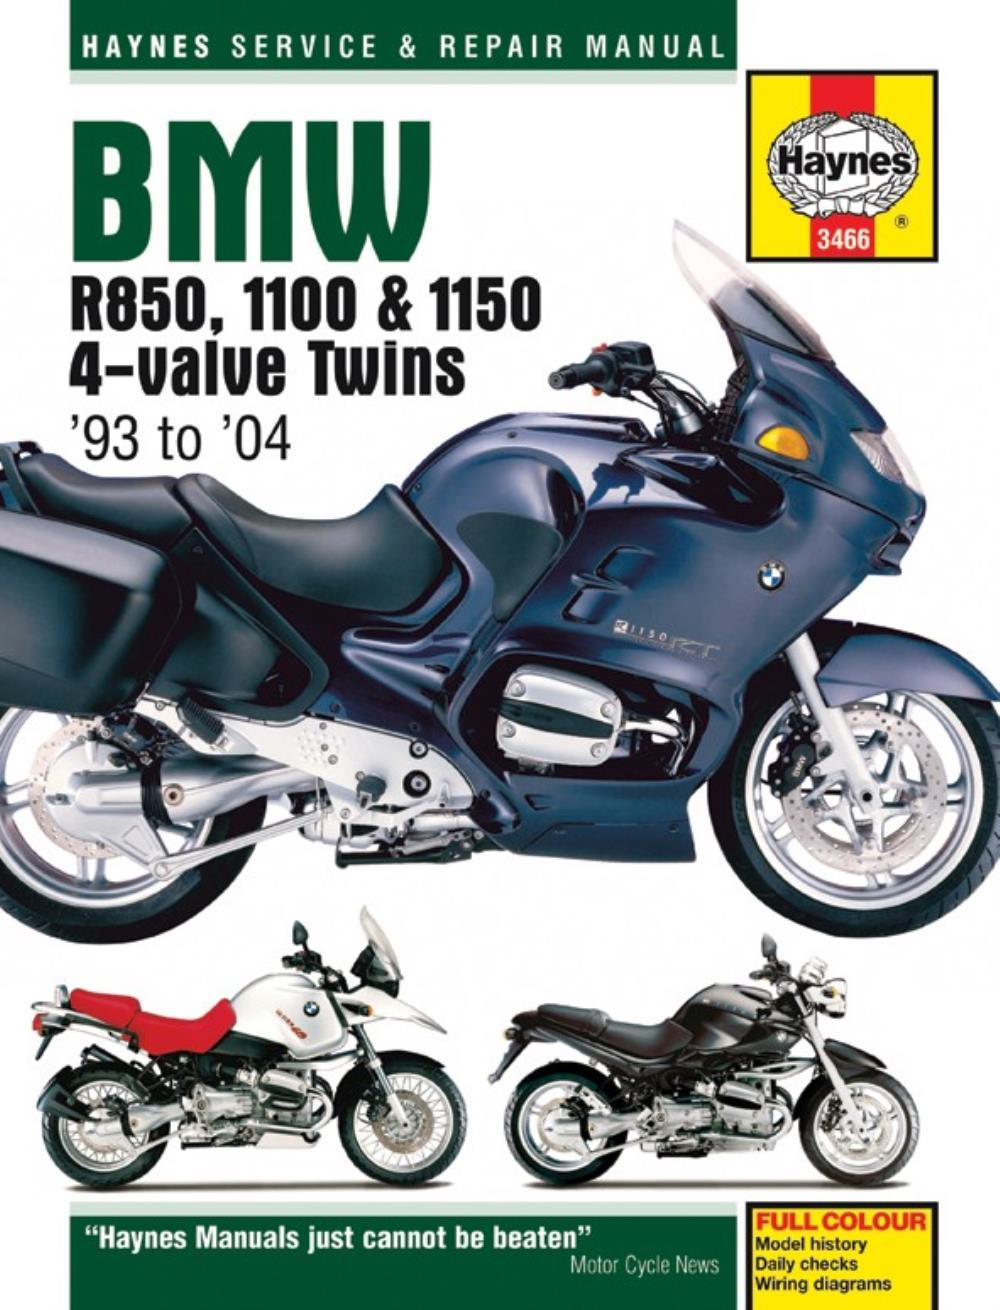 Manual Haynes For 2001 Bmw R 1150 Rt Ebay Wiring Diagrams